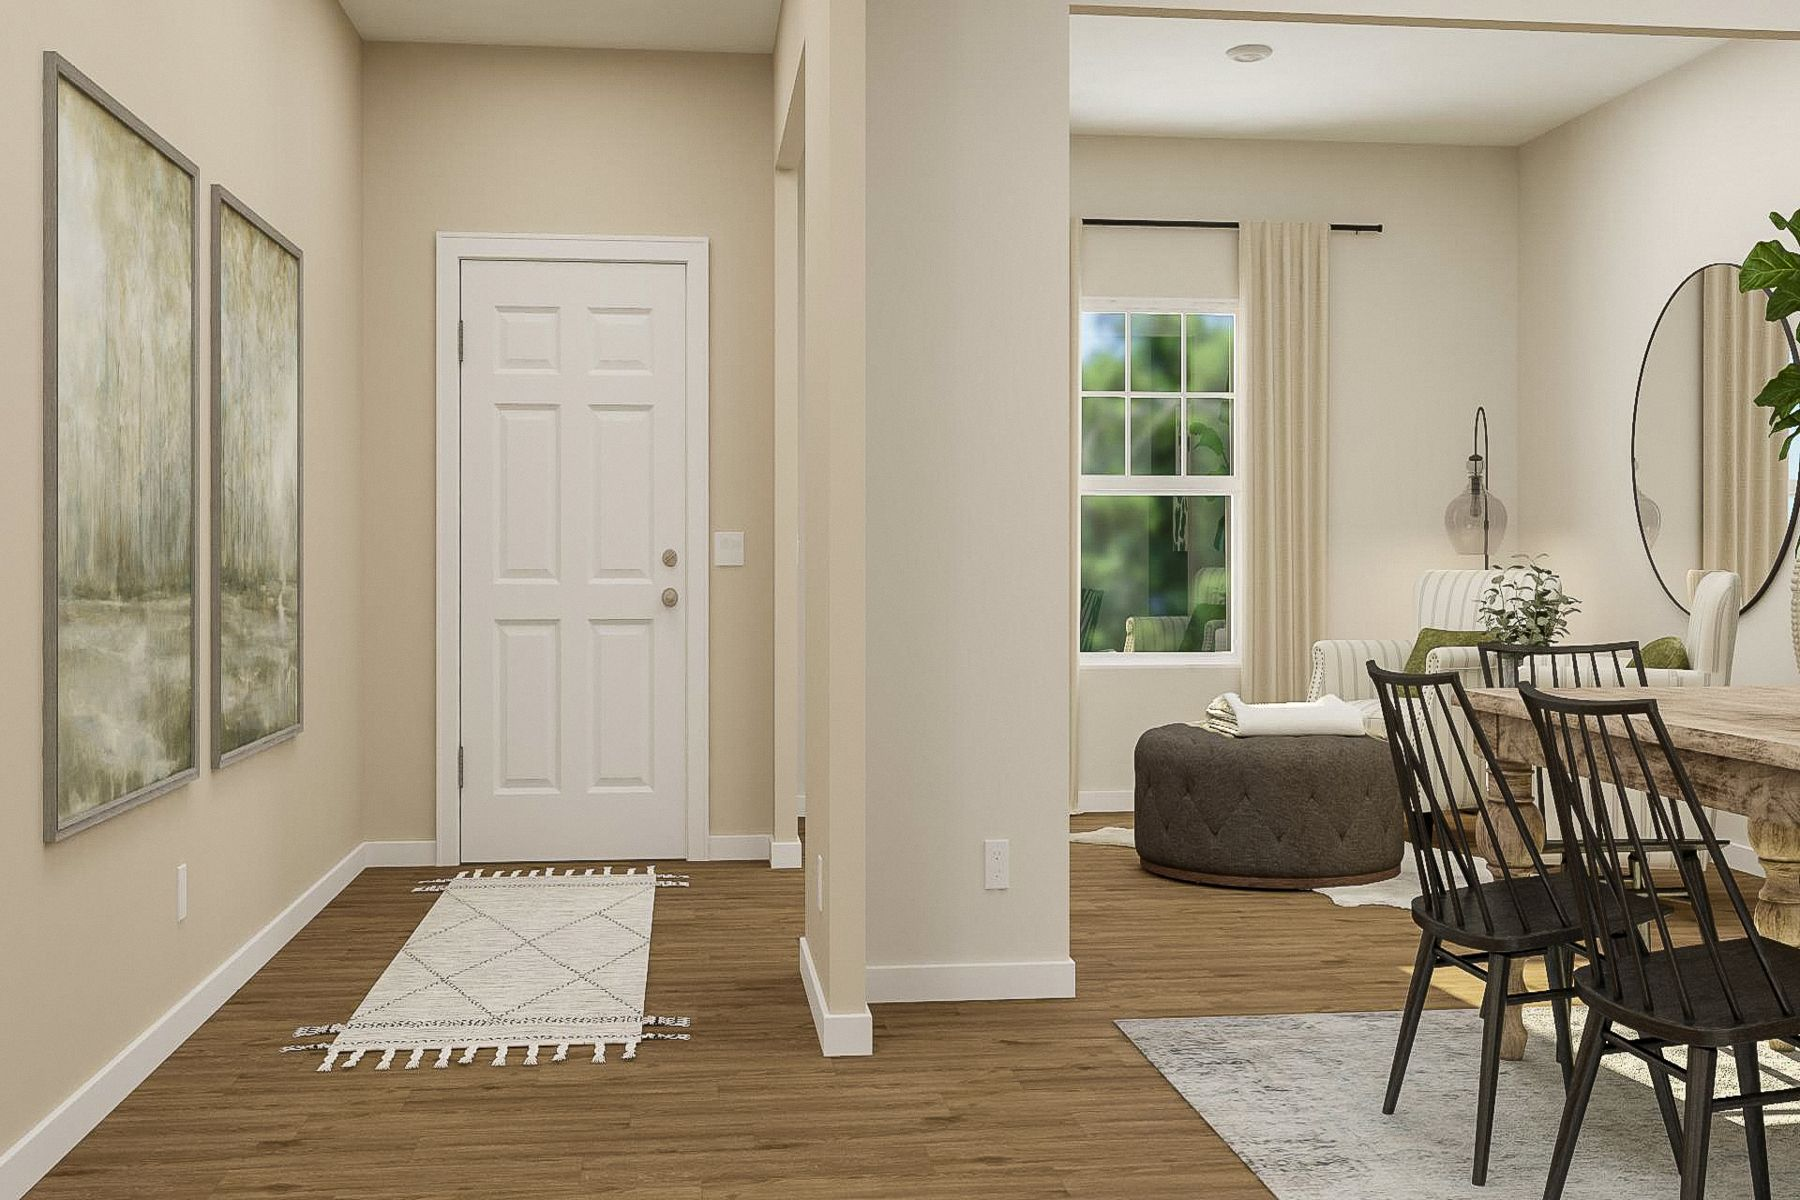 The Hartwell by LGI Homes:Call now to schedule a tour of this move-in ready home